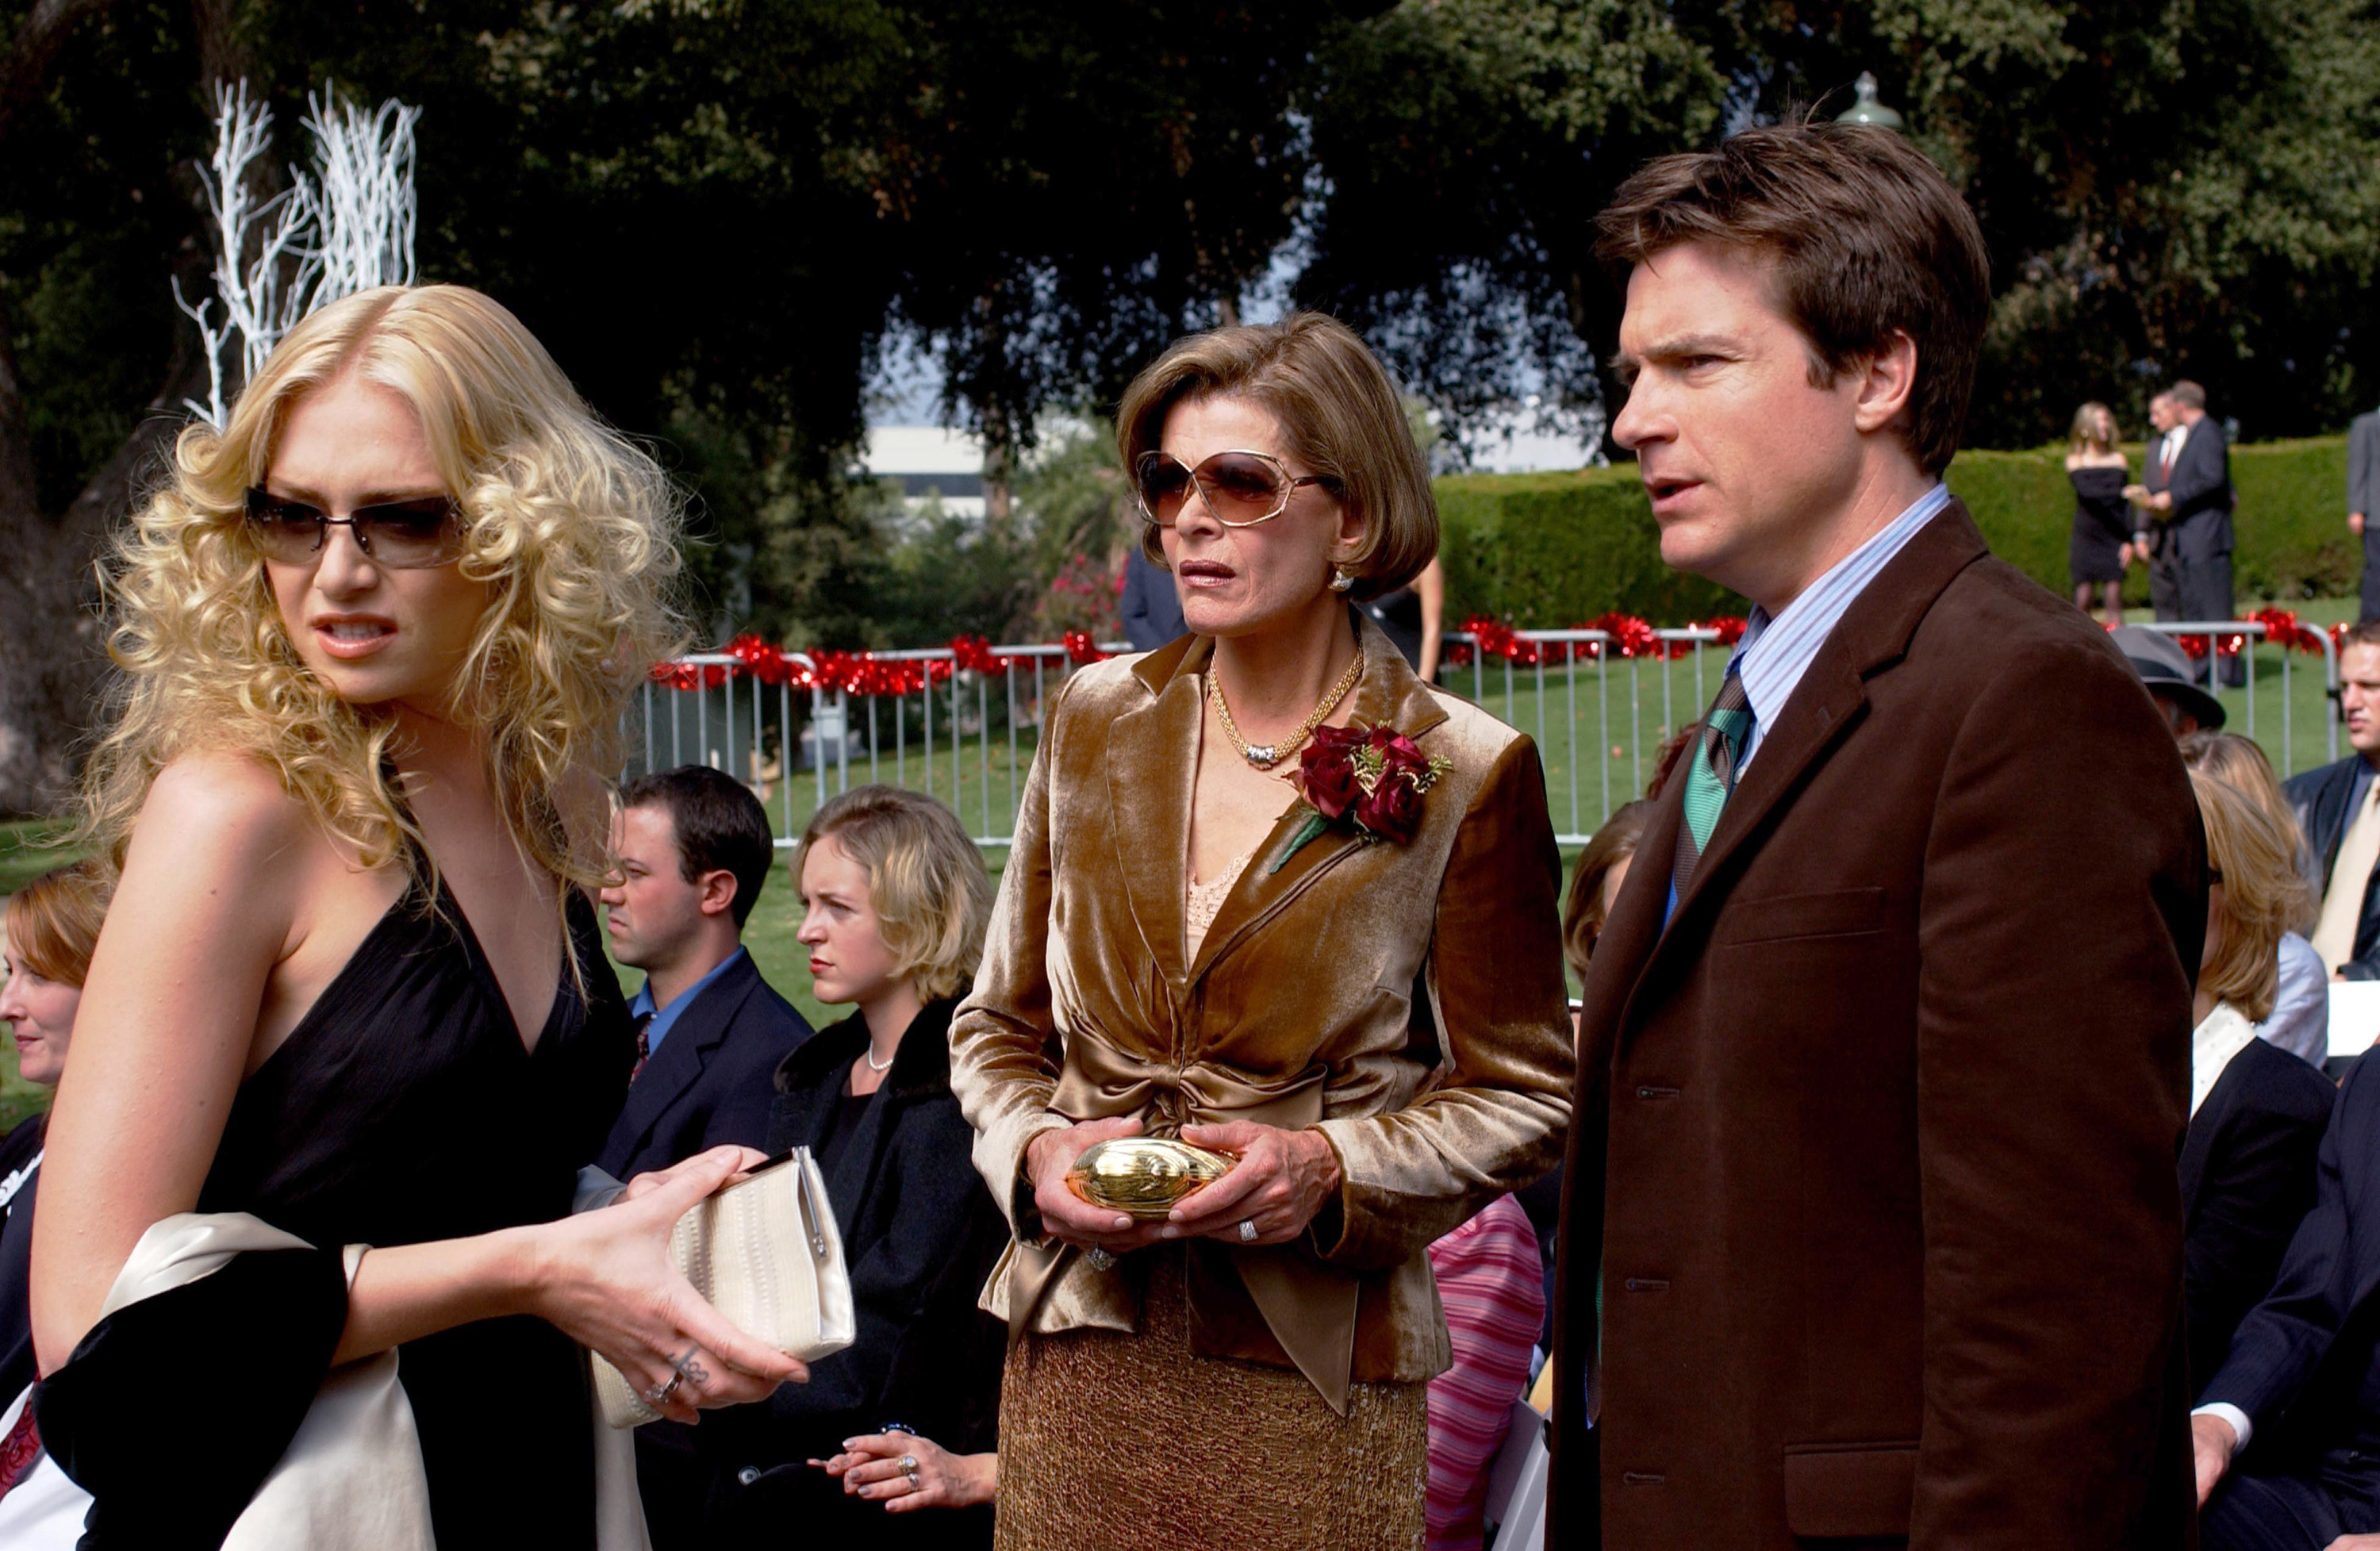 Portia de Rossi, Jessica Walter, and Jason Bateman staring at something with great confusion